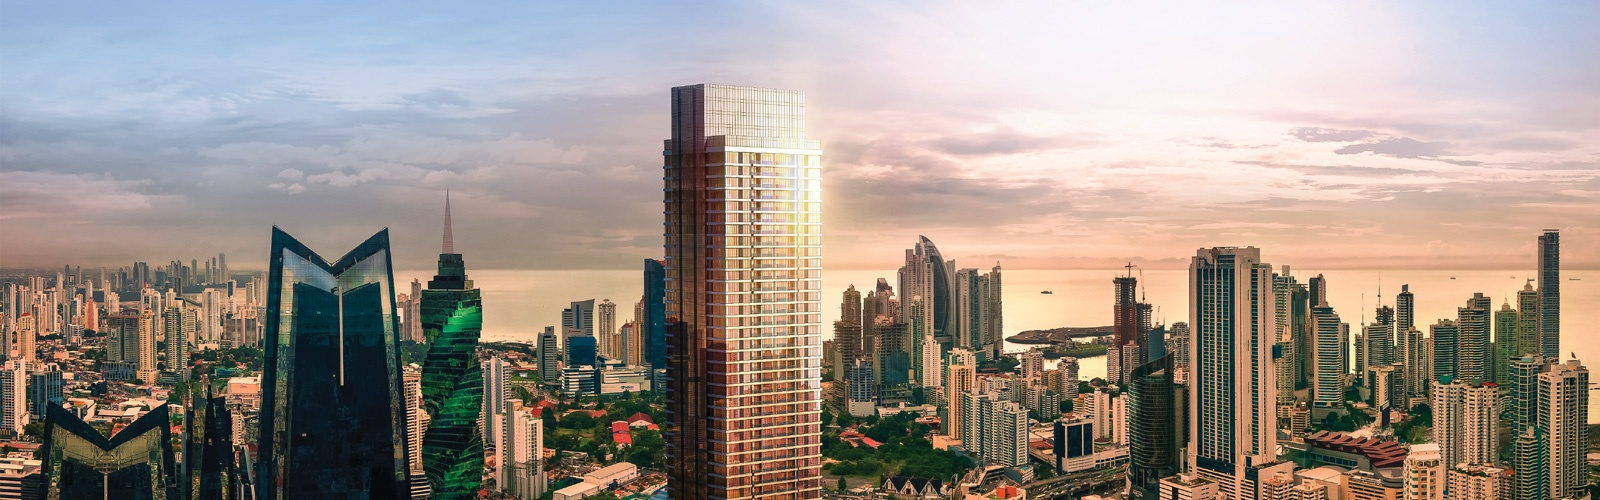 DAO Luxury Living Panama